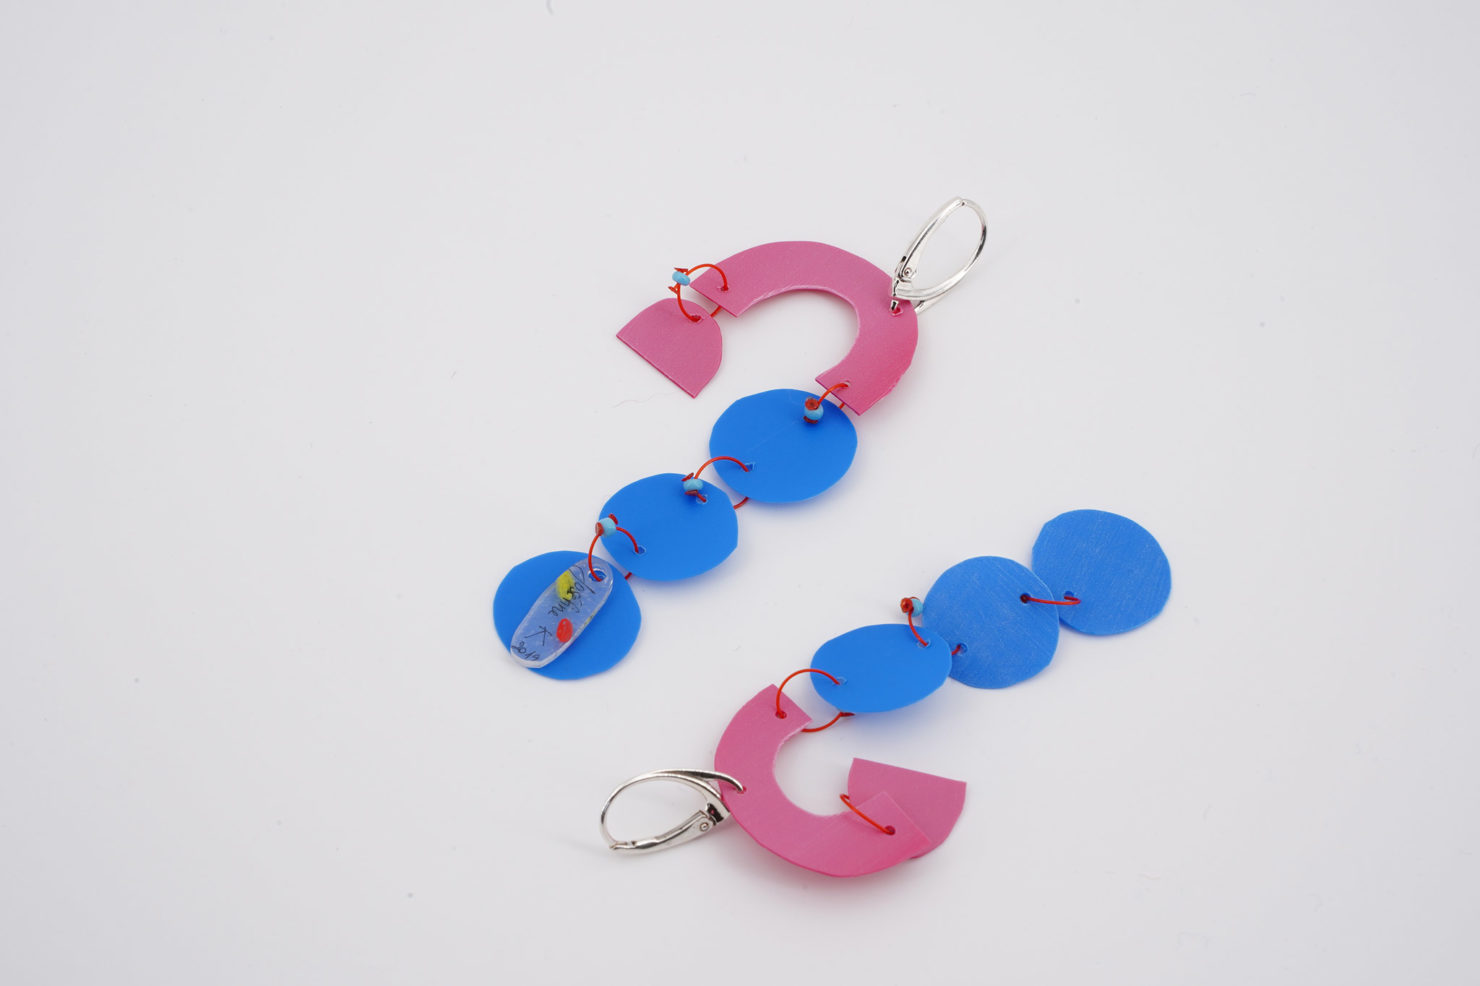 HANDMADE EARRINGS WITH CUTTED RECYCLED PLASTIC-BLUE BUBBLES